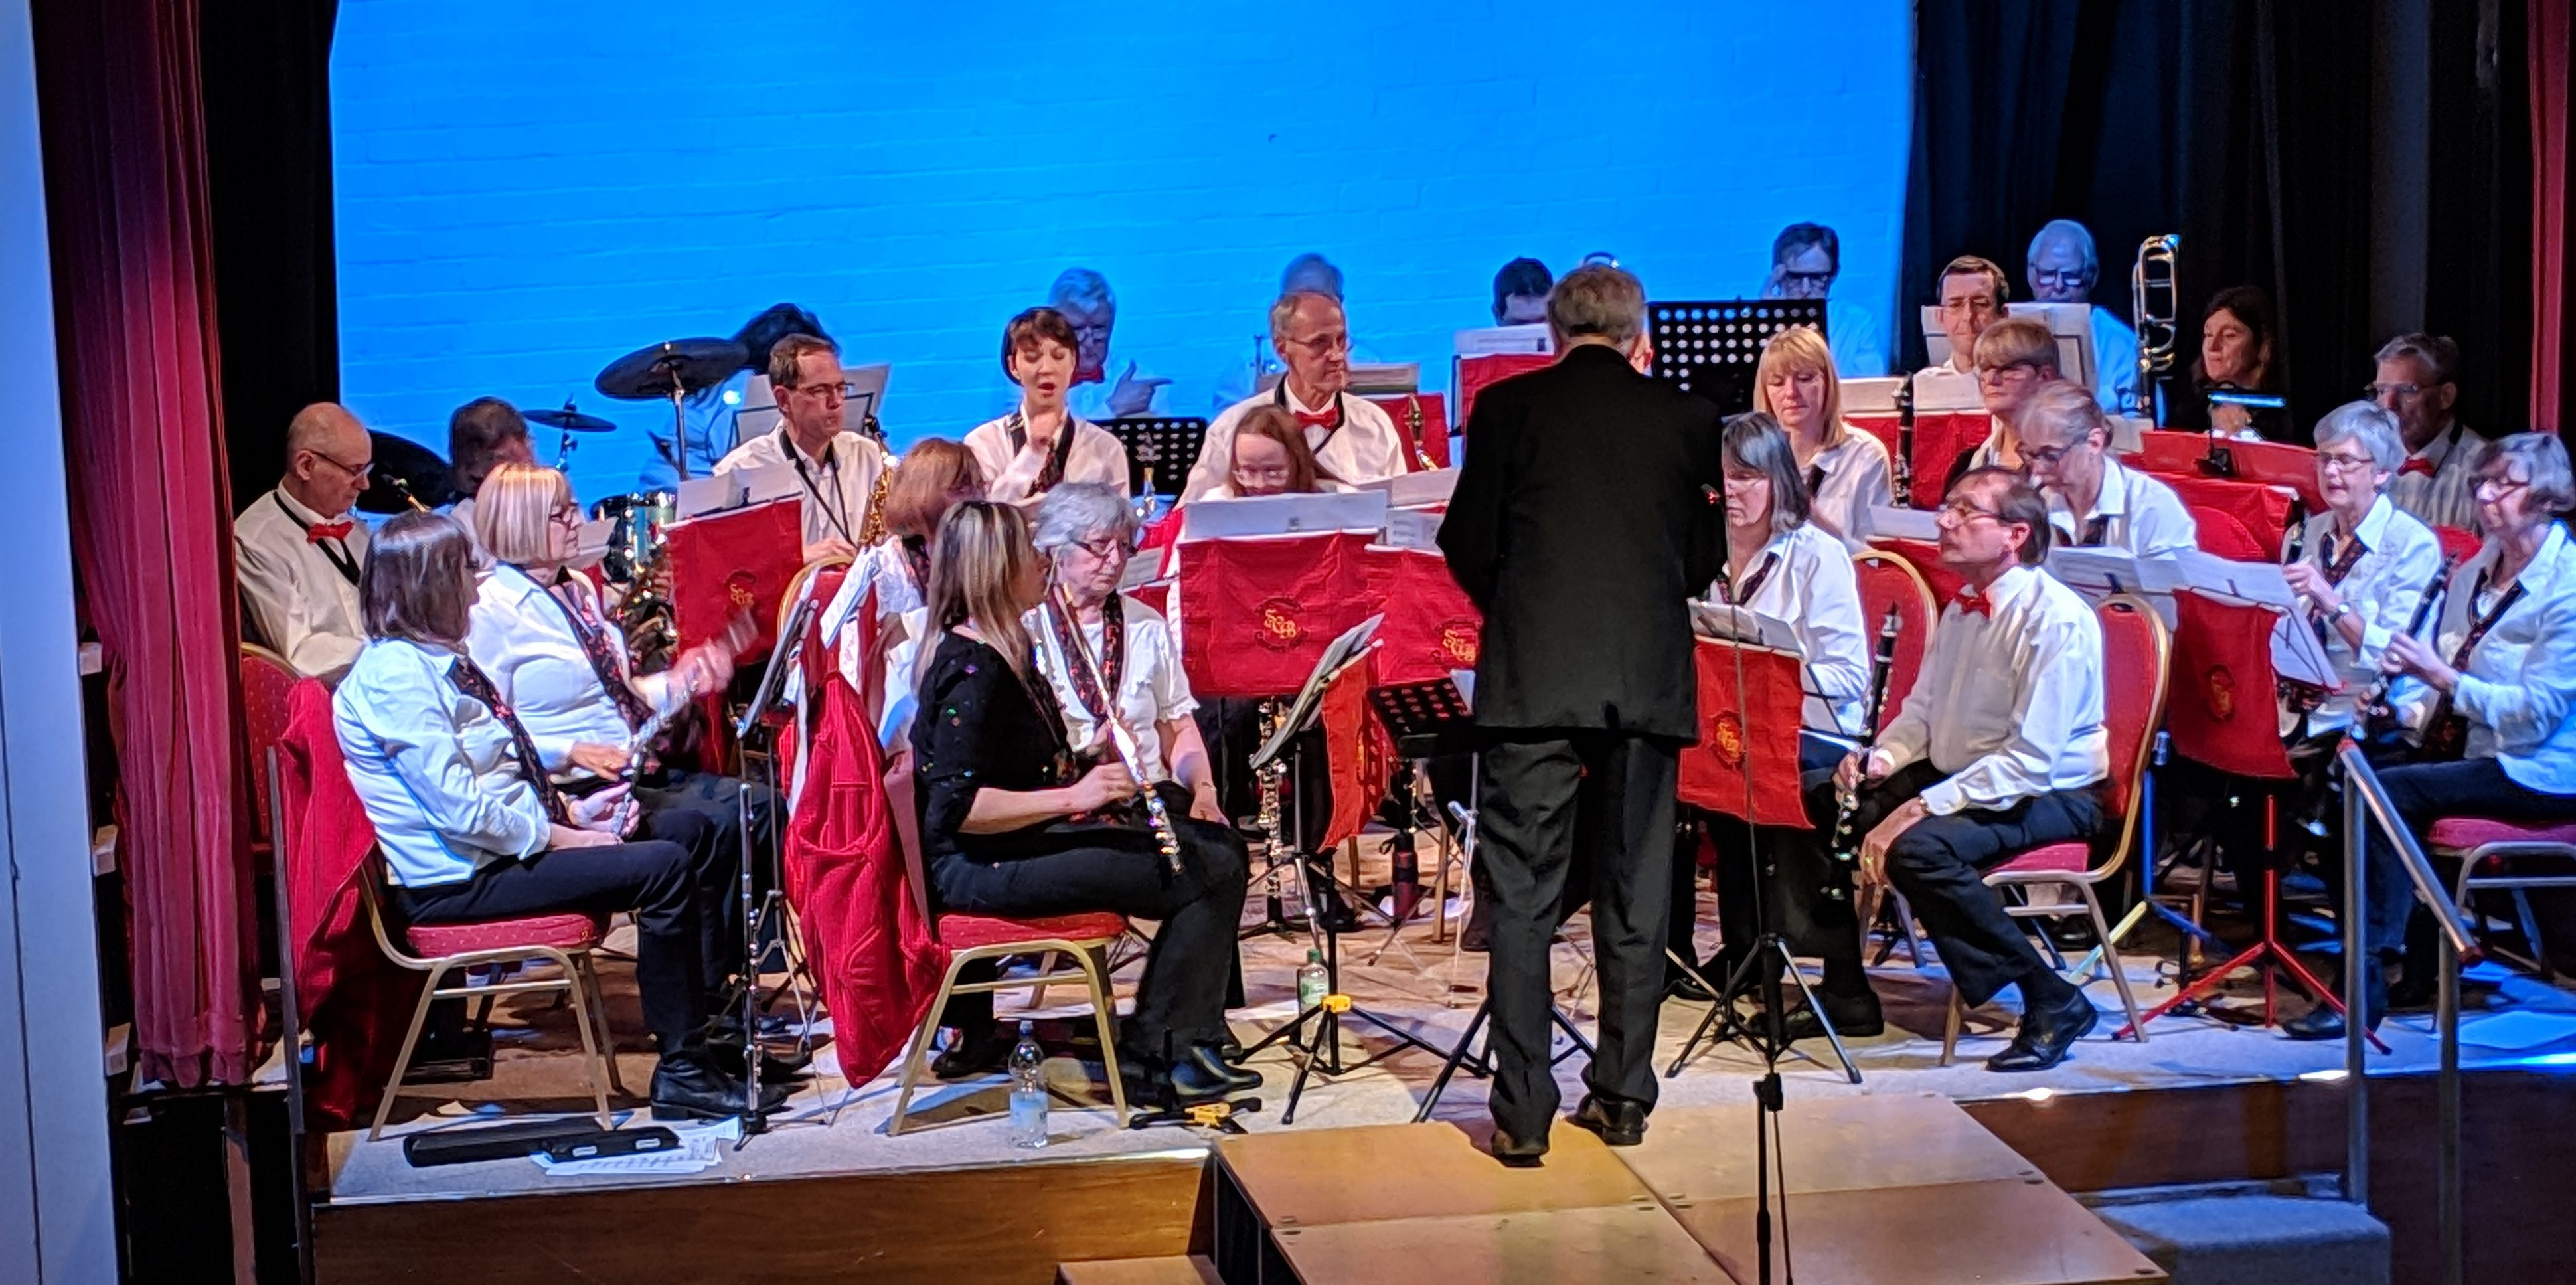 Picture of the Shewsbury Concert Band conducted by Ken Lumley